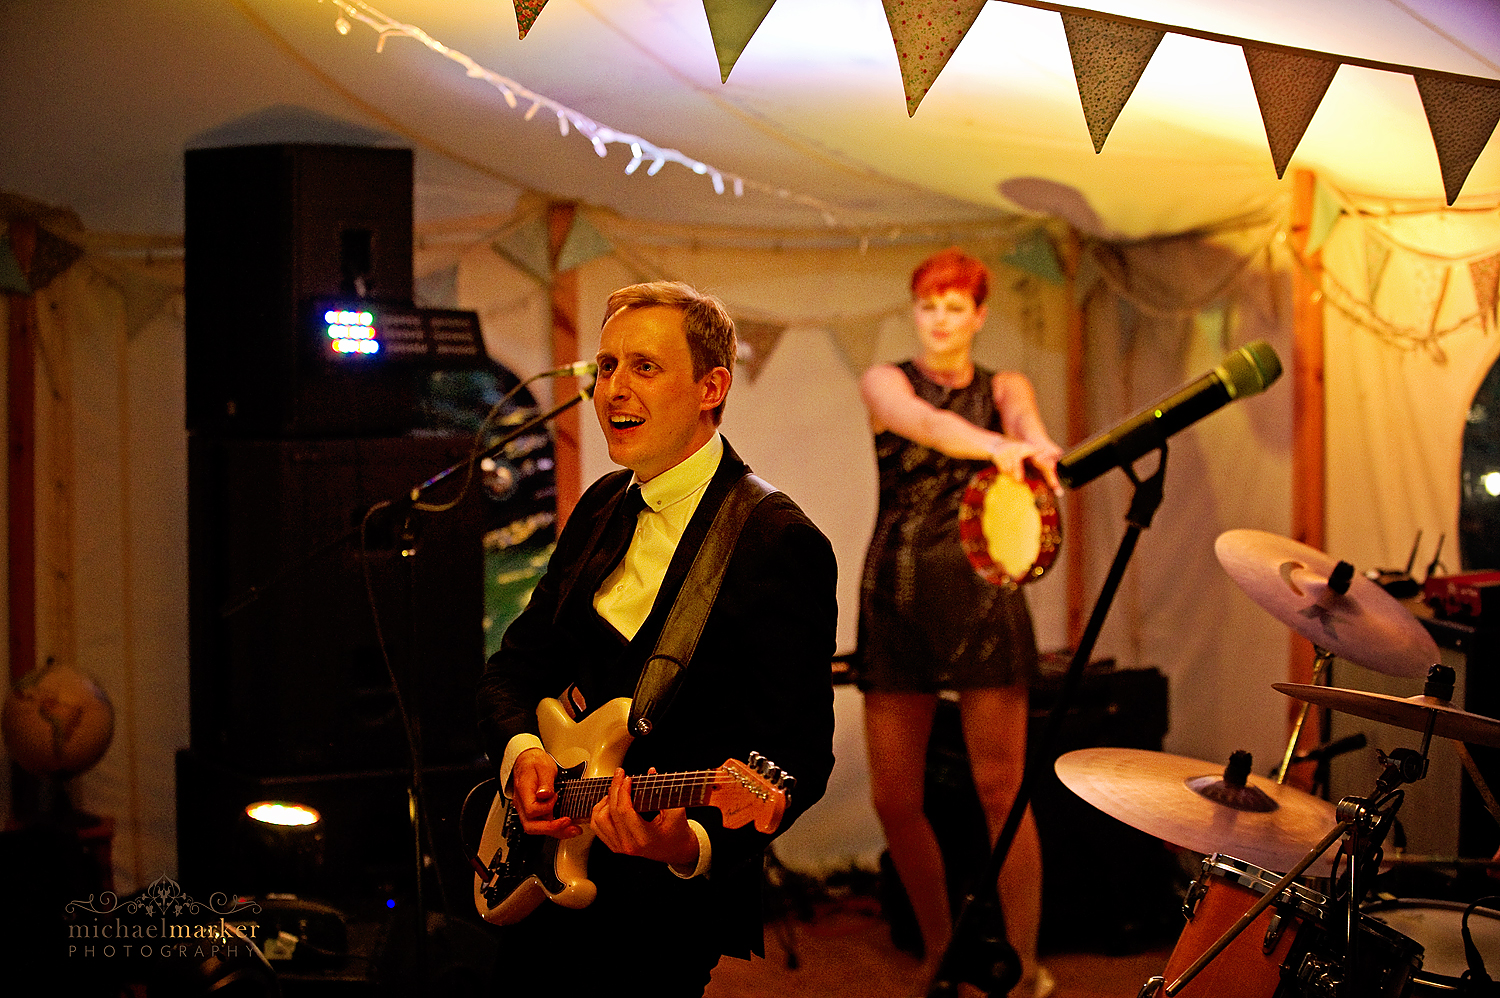 Wiltshire-wedding-band-Zoots-6